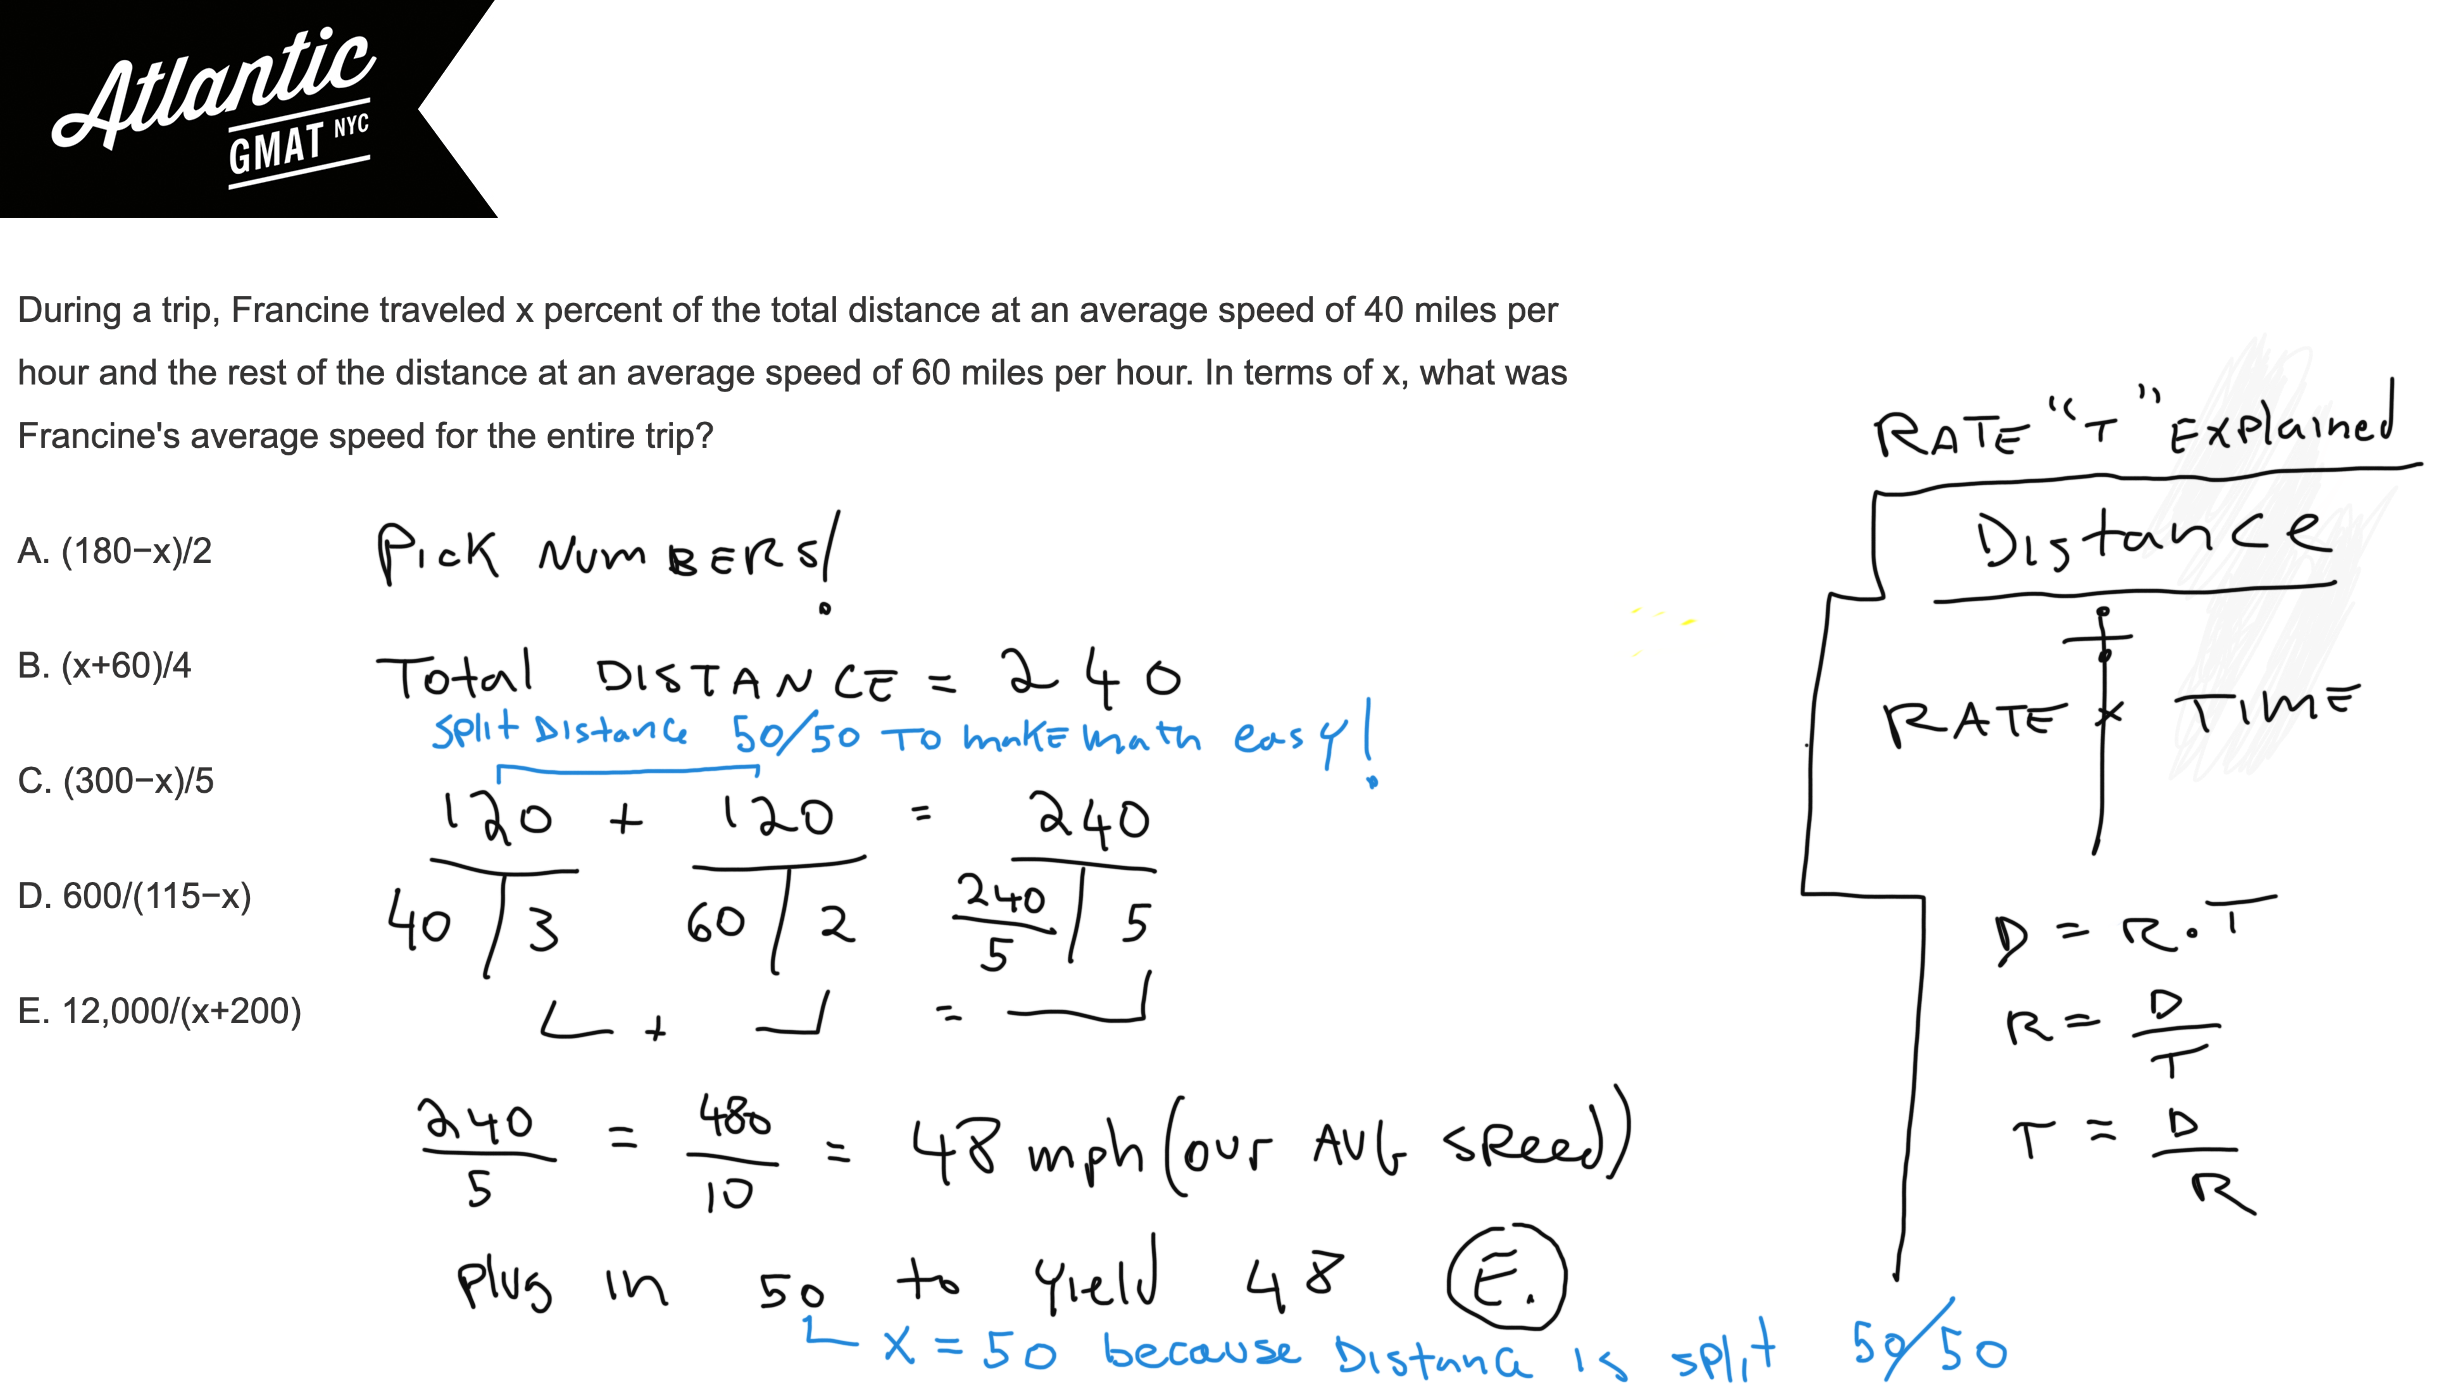 During a trip, Francine traveled x percent of the total distance at an average speed of 40 miles per hour GMAT Explanation Diagram